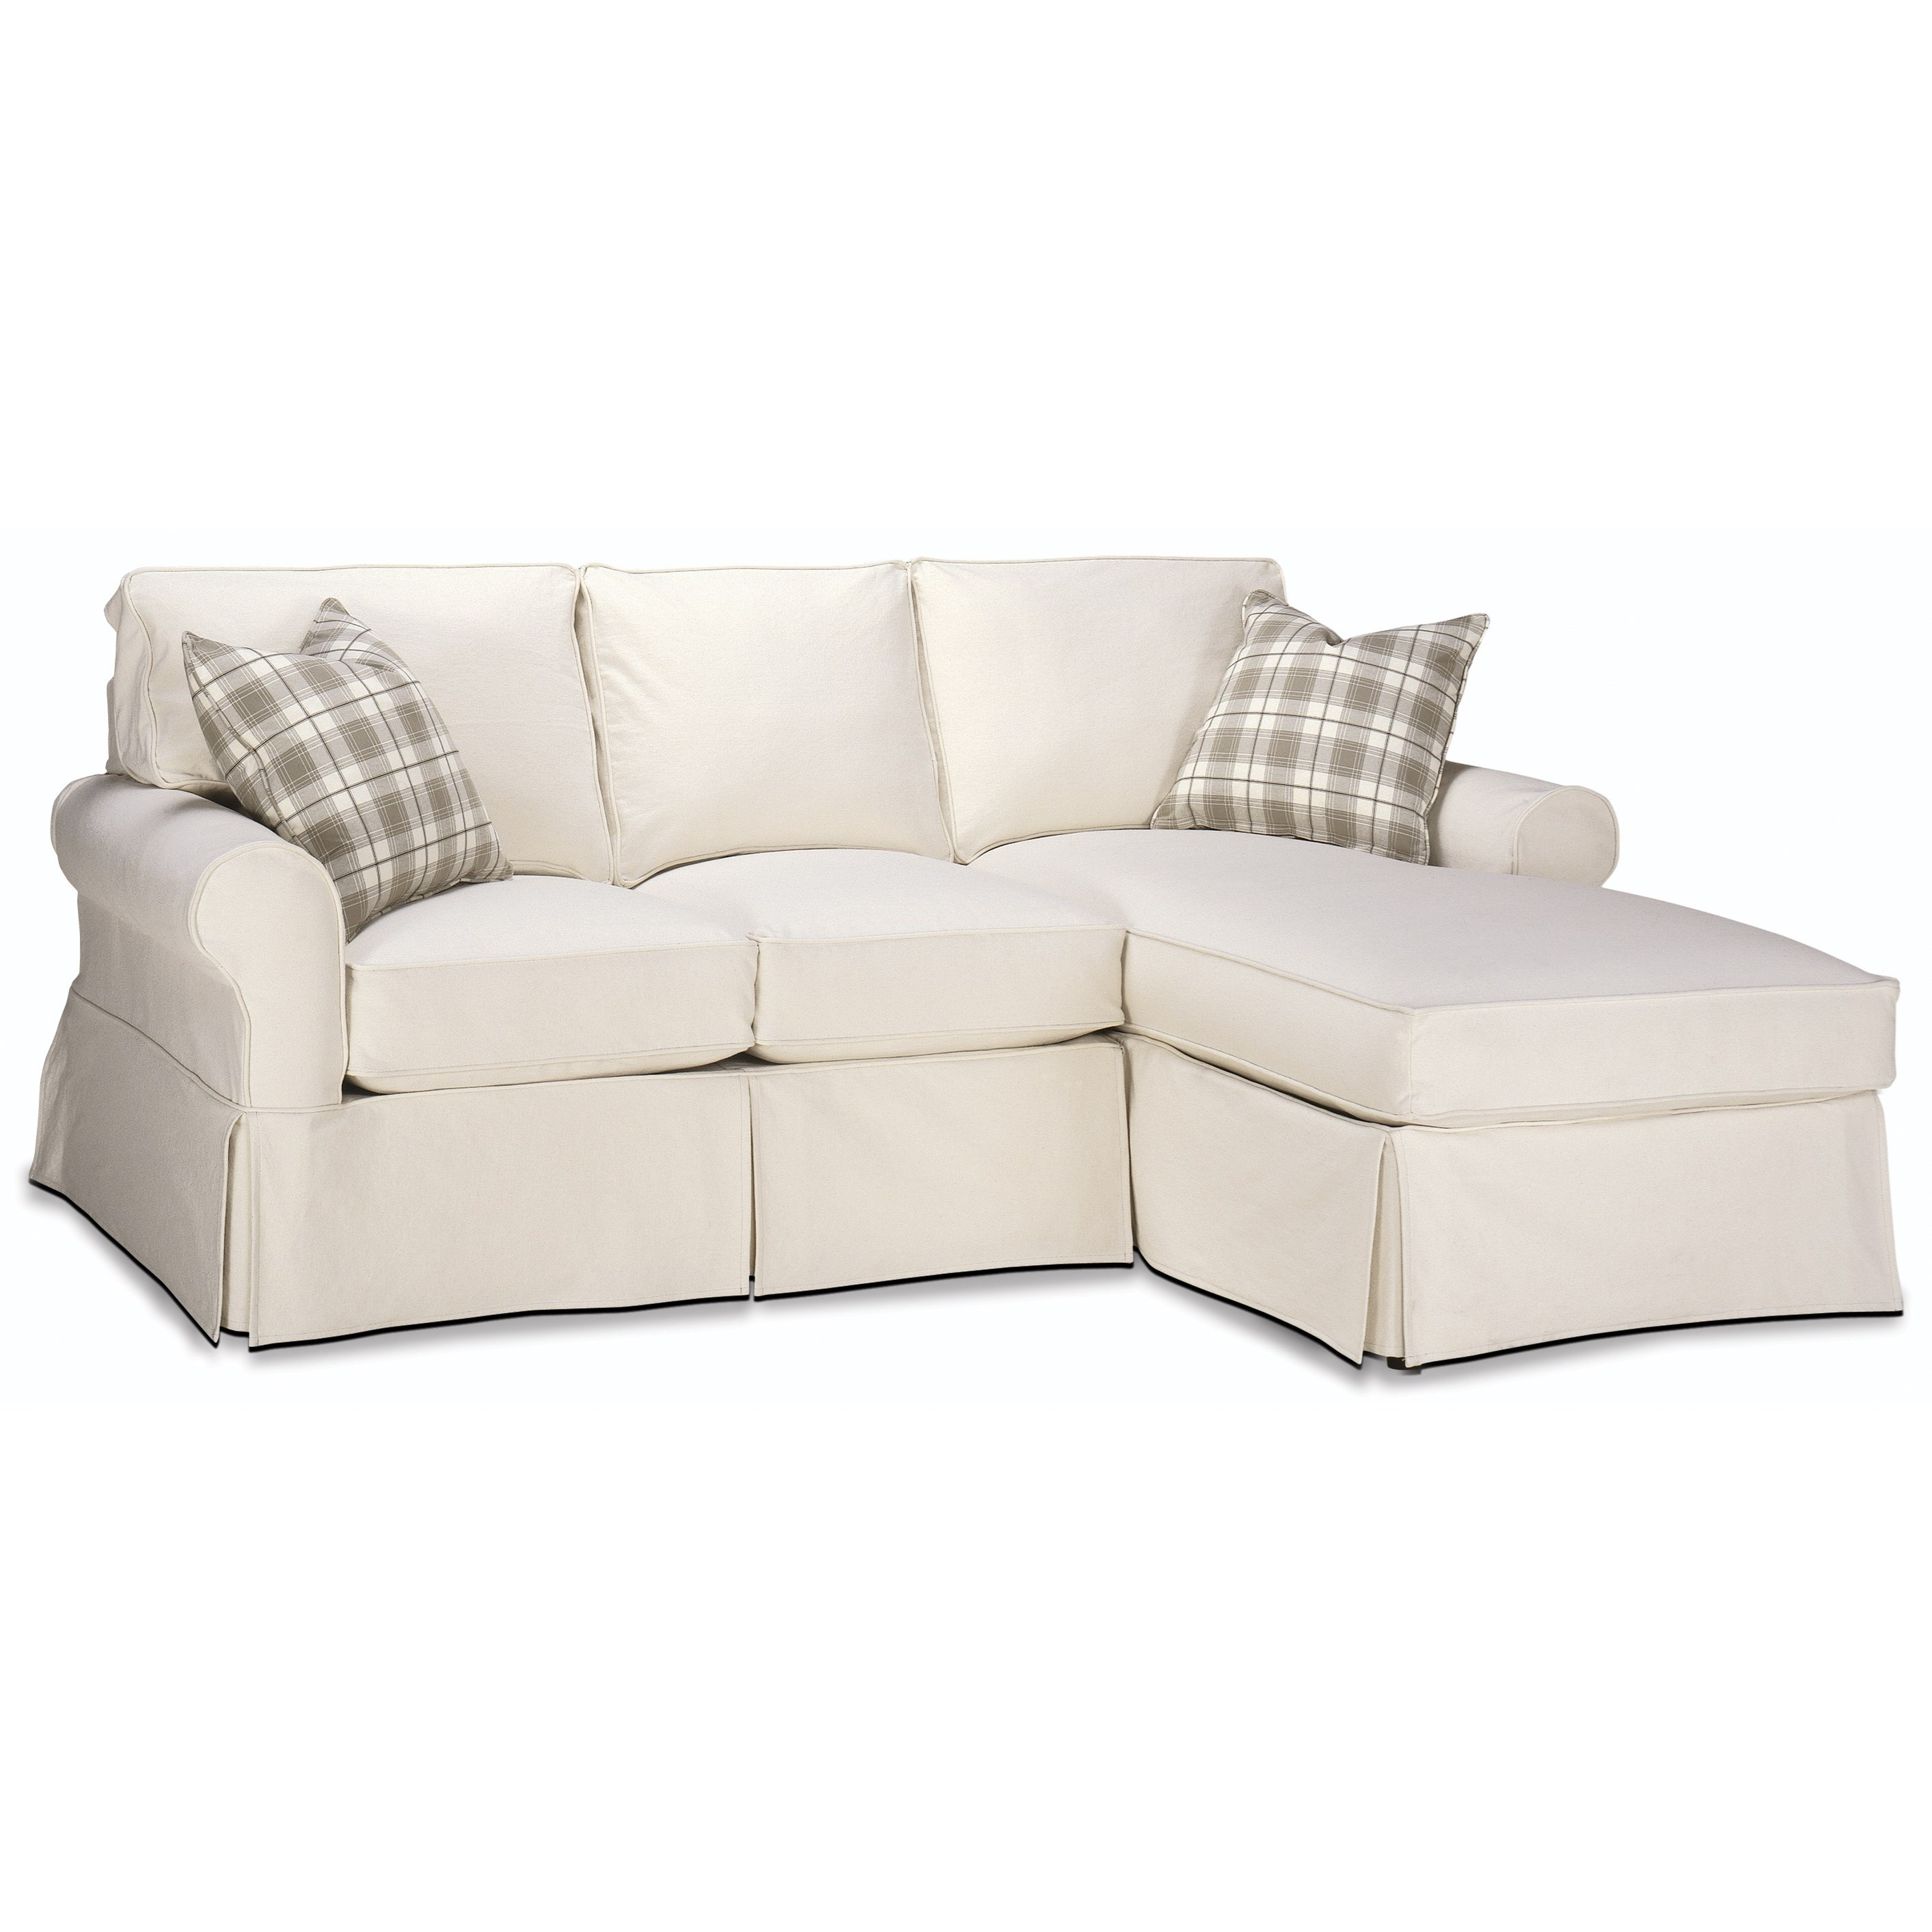 Masquerade Sectional Sofa by Rowe at Saugerties Furniture Mart